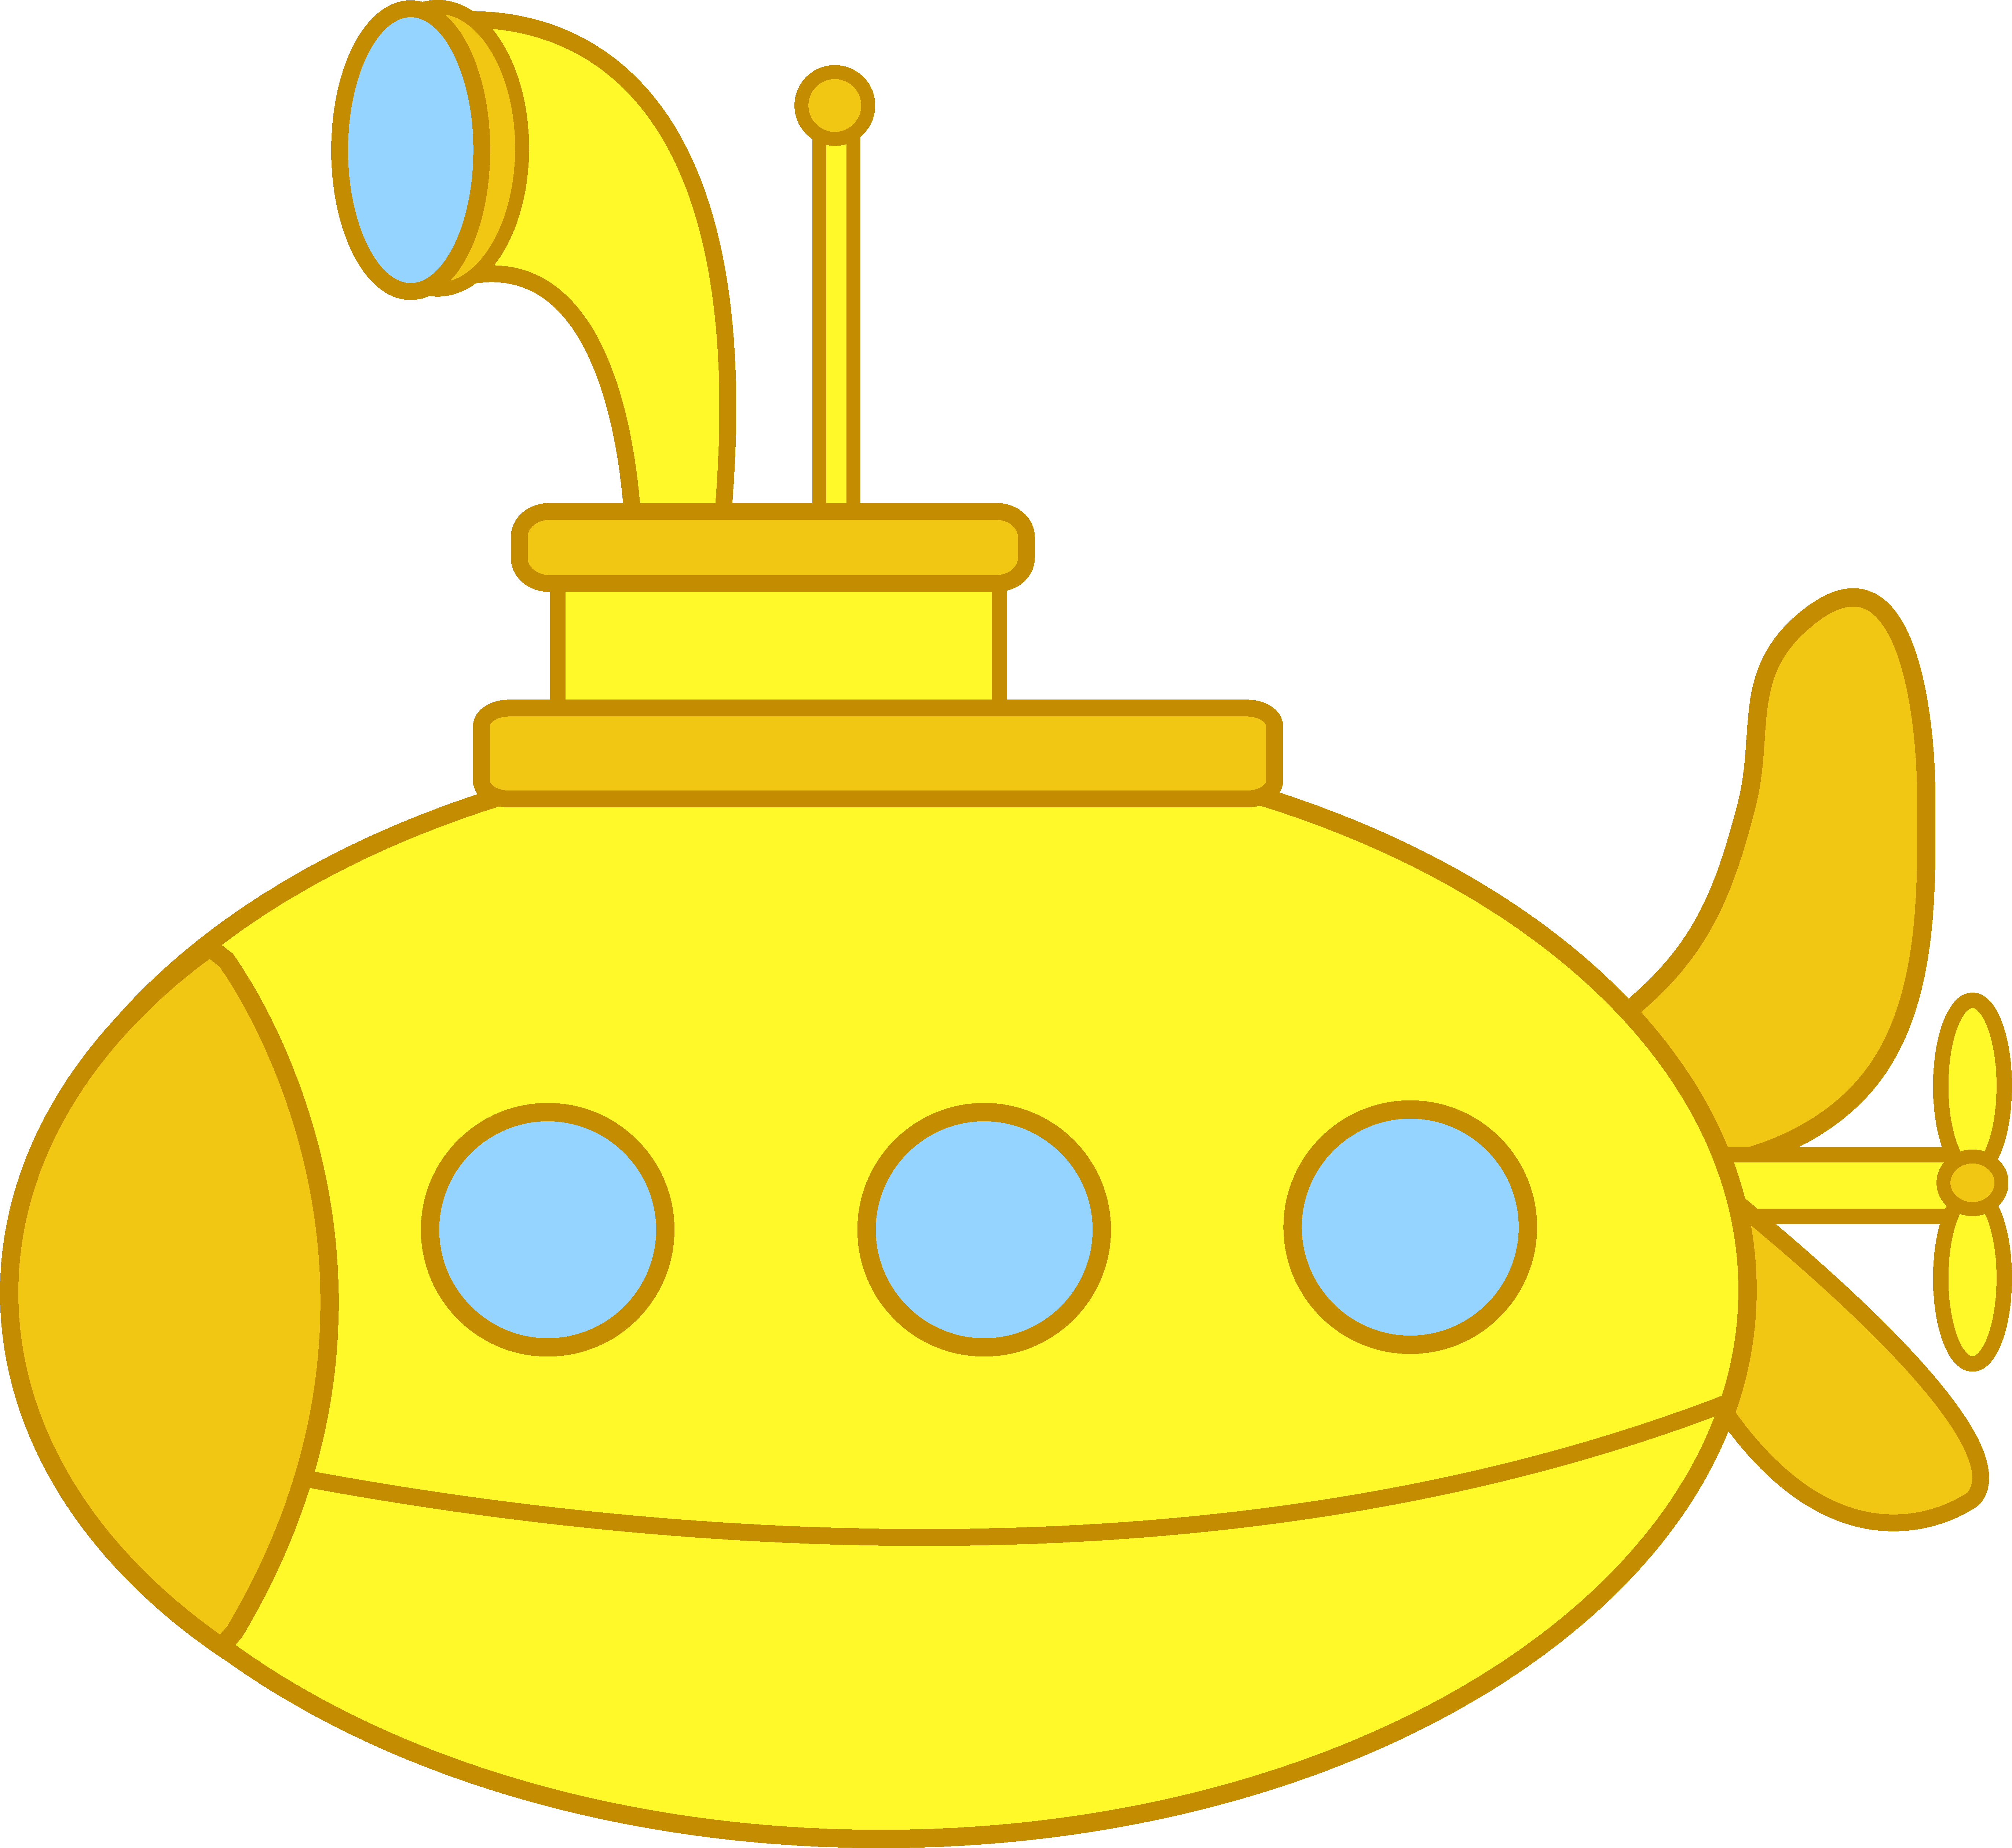 graphic transparent download Submarine clipart black and white. Cute yellow sara pinterest